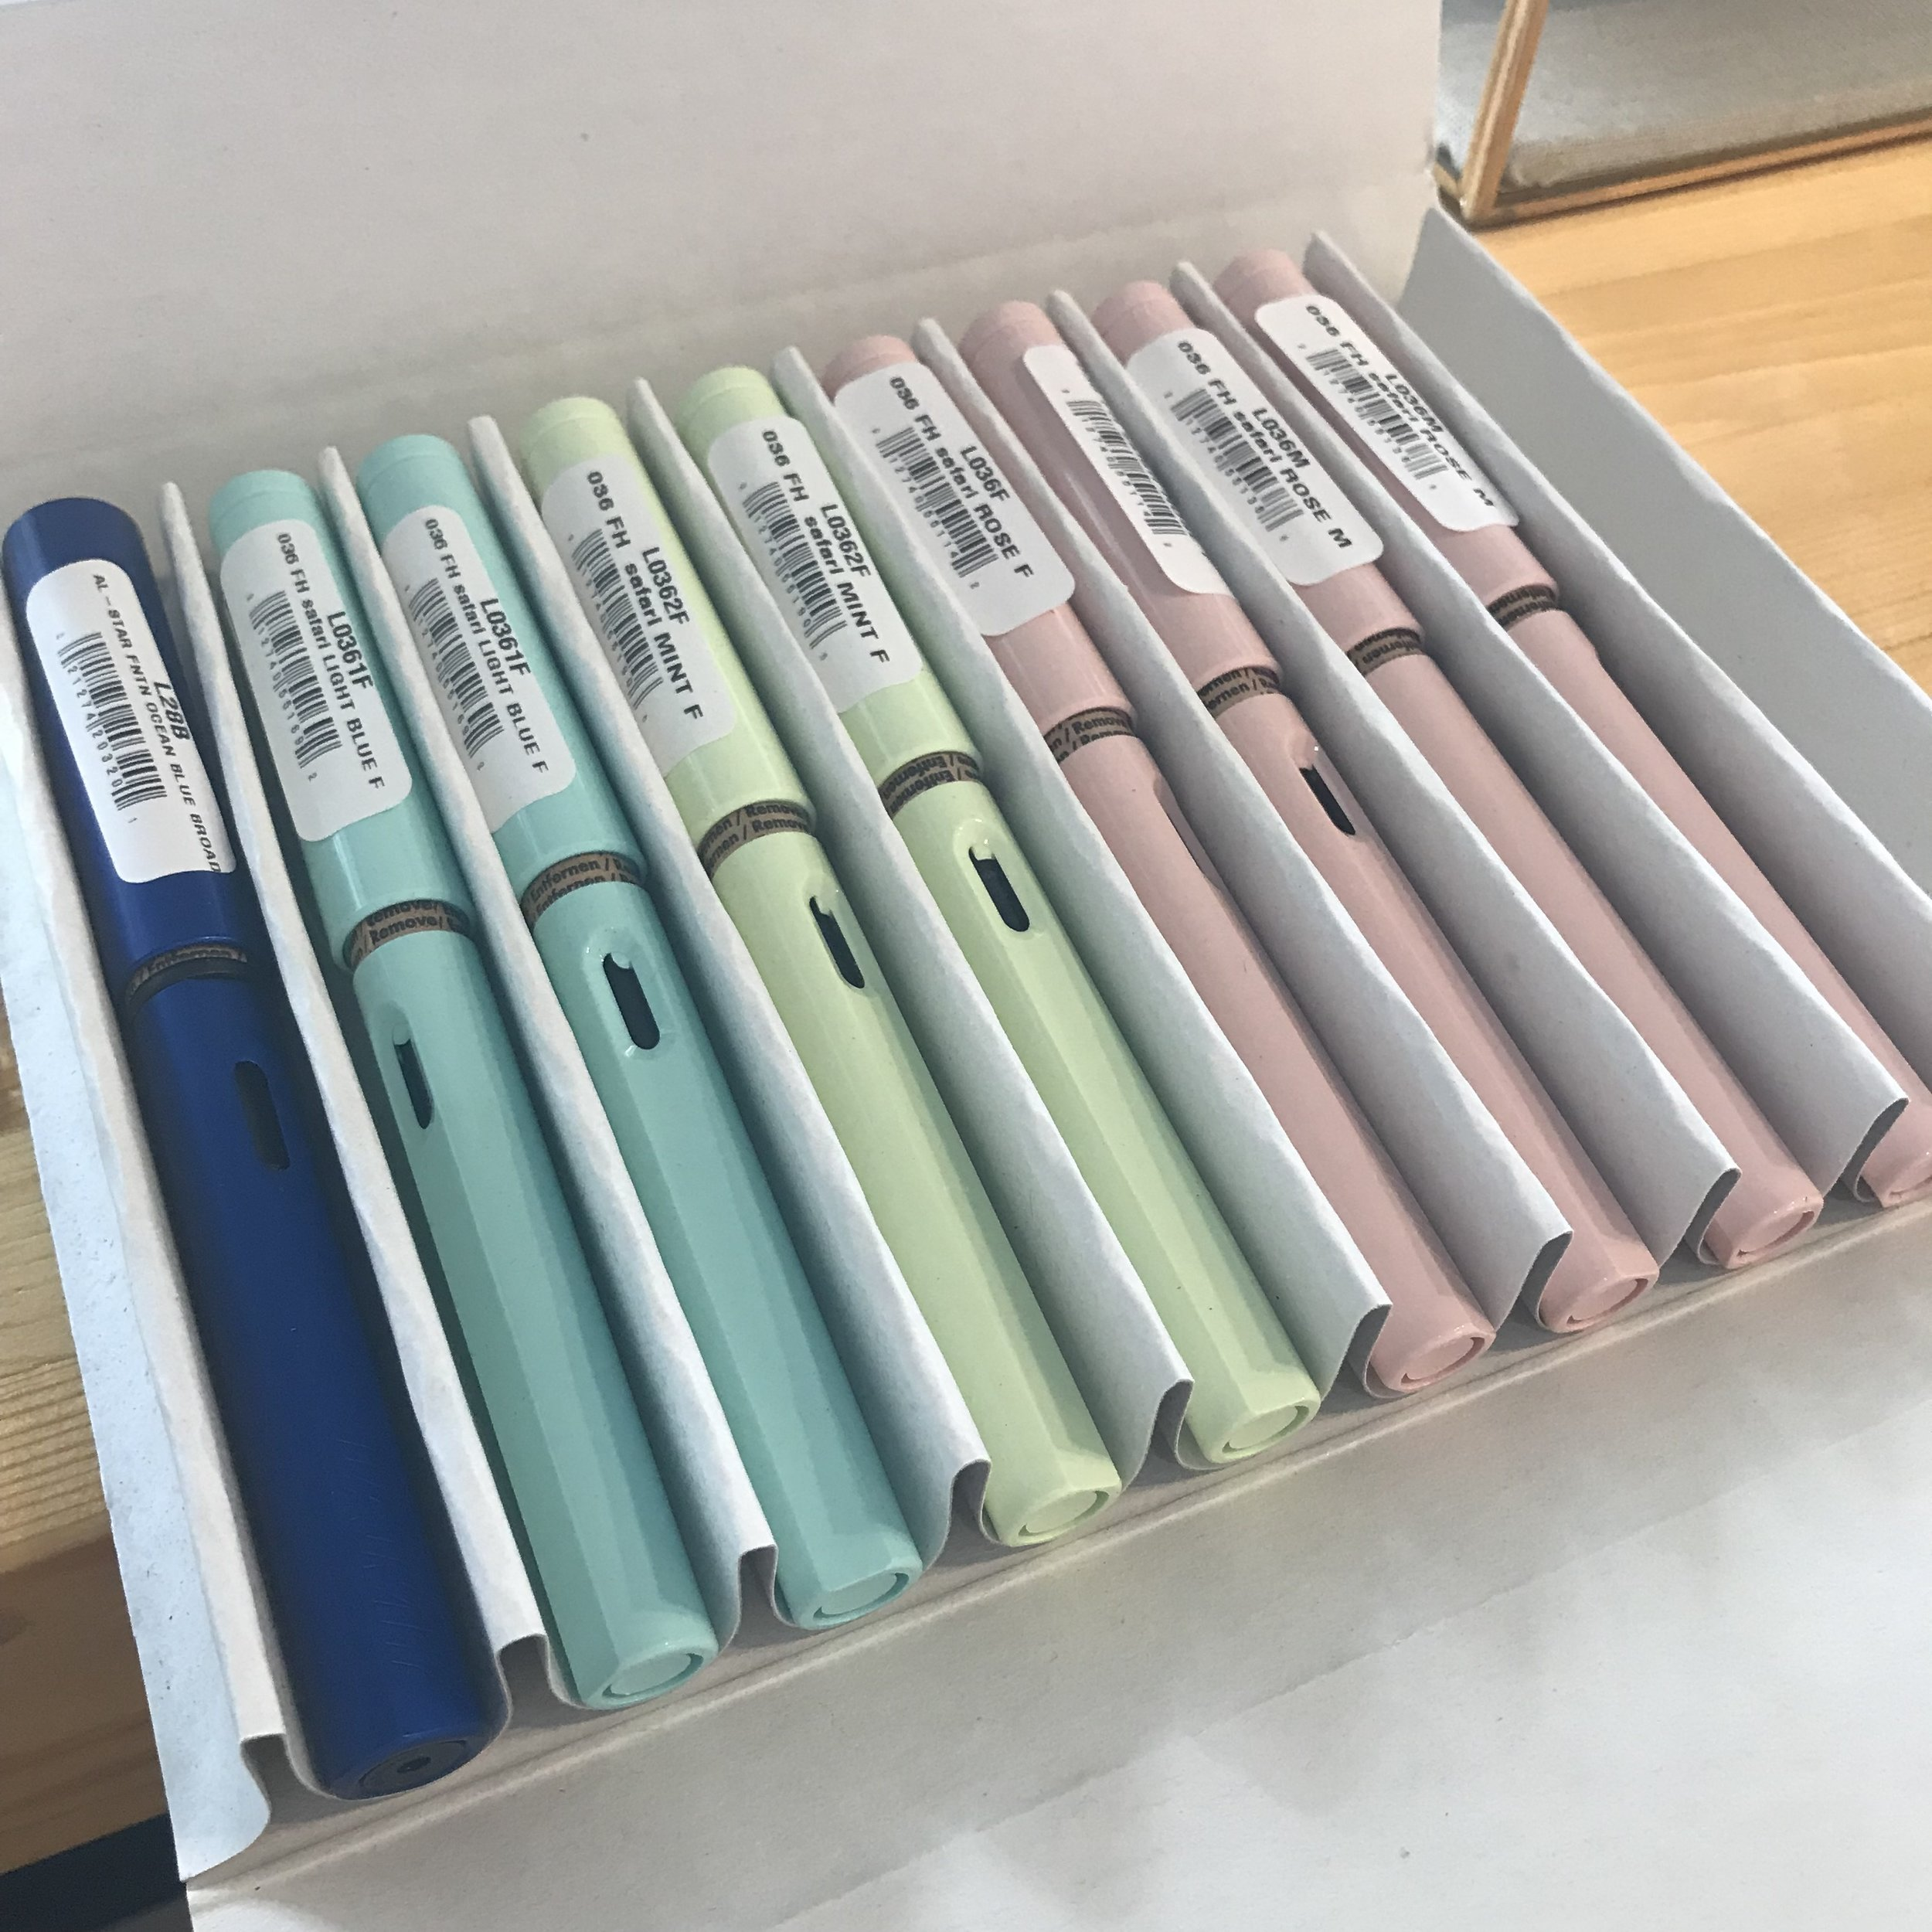 A colorful shipment of Lamy fountain pens! One of those lovely, left hand pinks became my new BFF in the letter writing game. Now I travel with it!